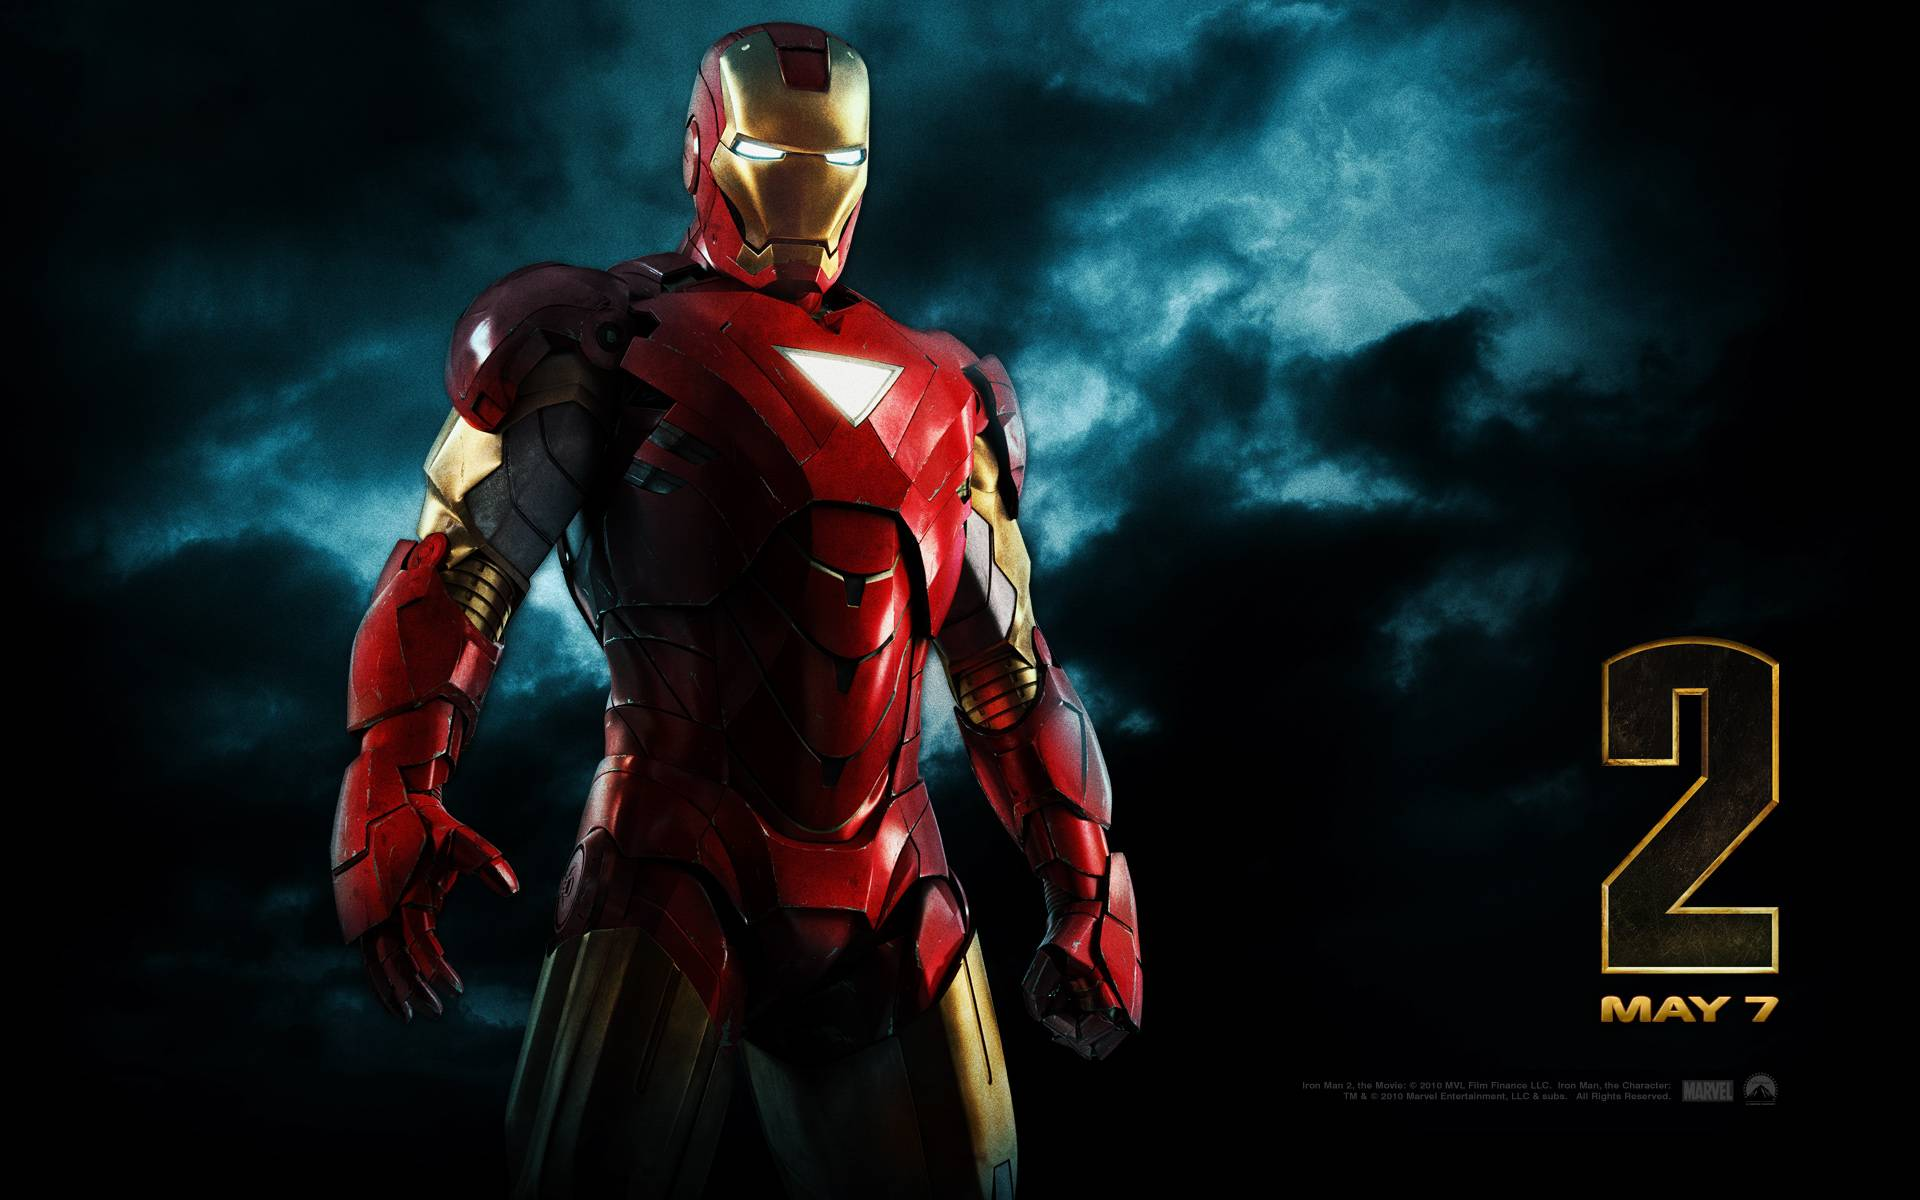 Iron Wallpapers 4k For Your Phone And Desktop Screen